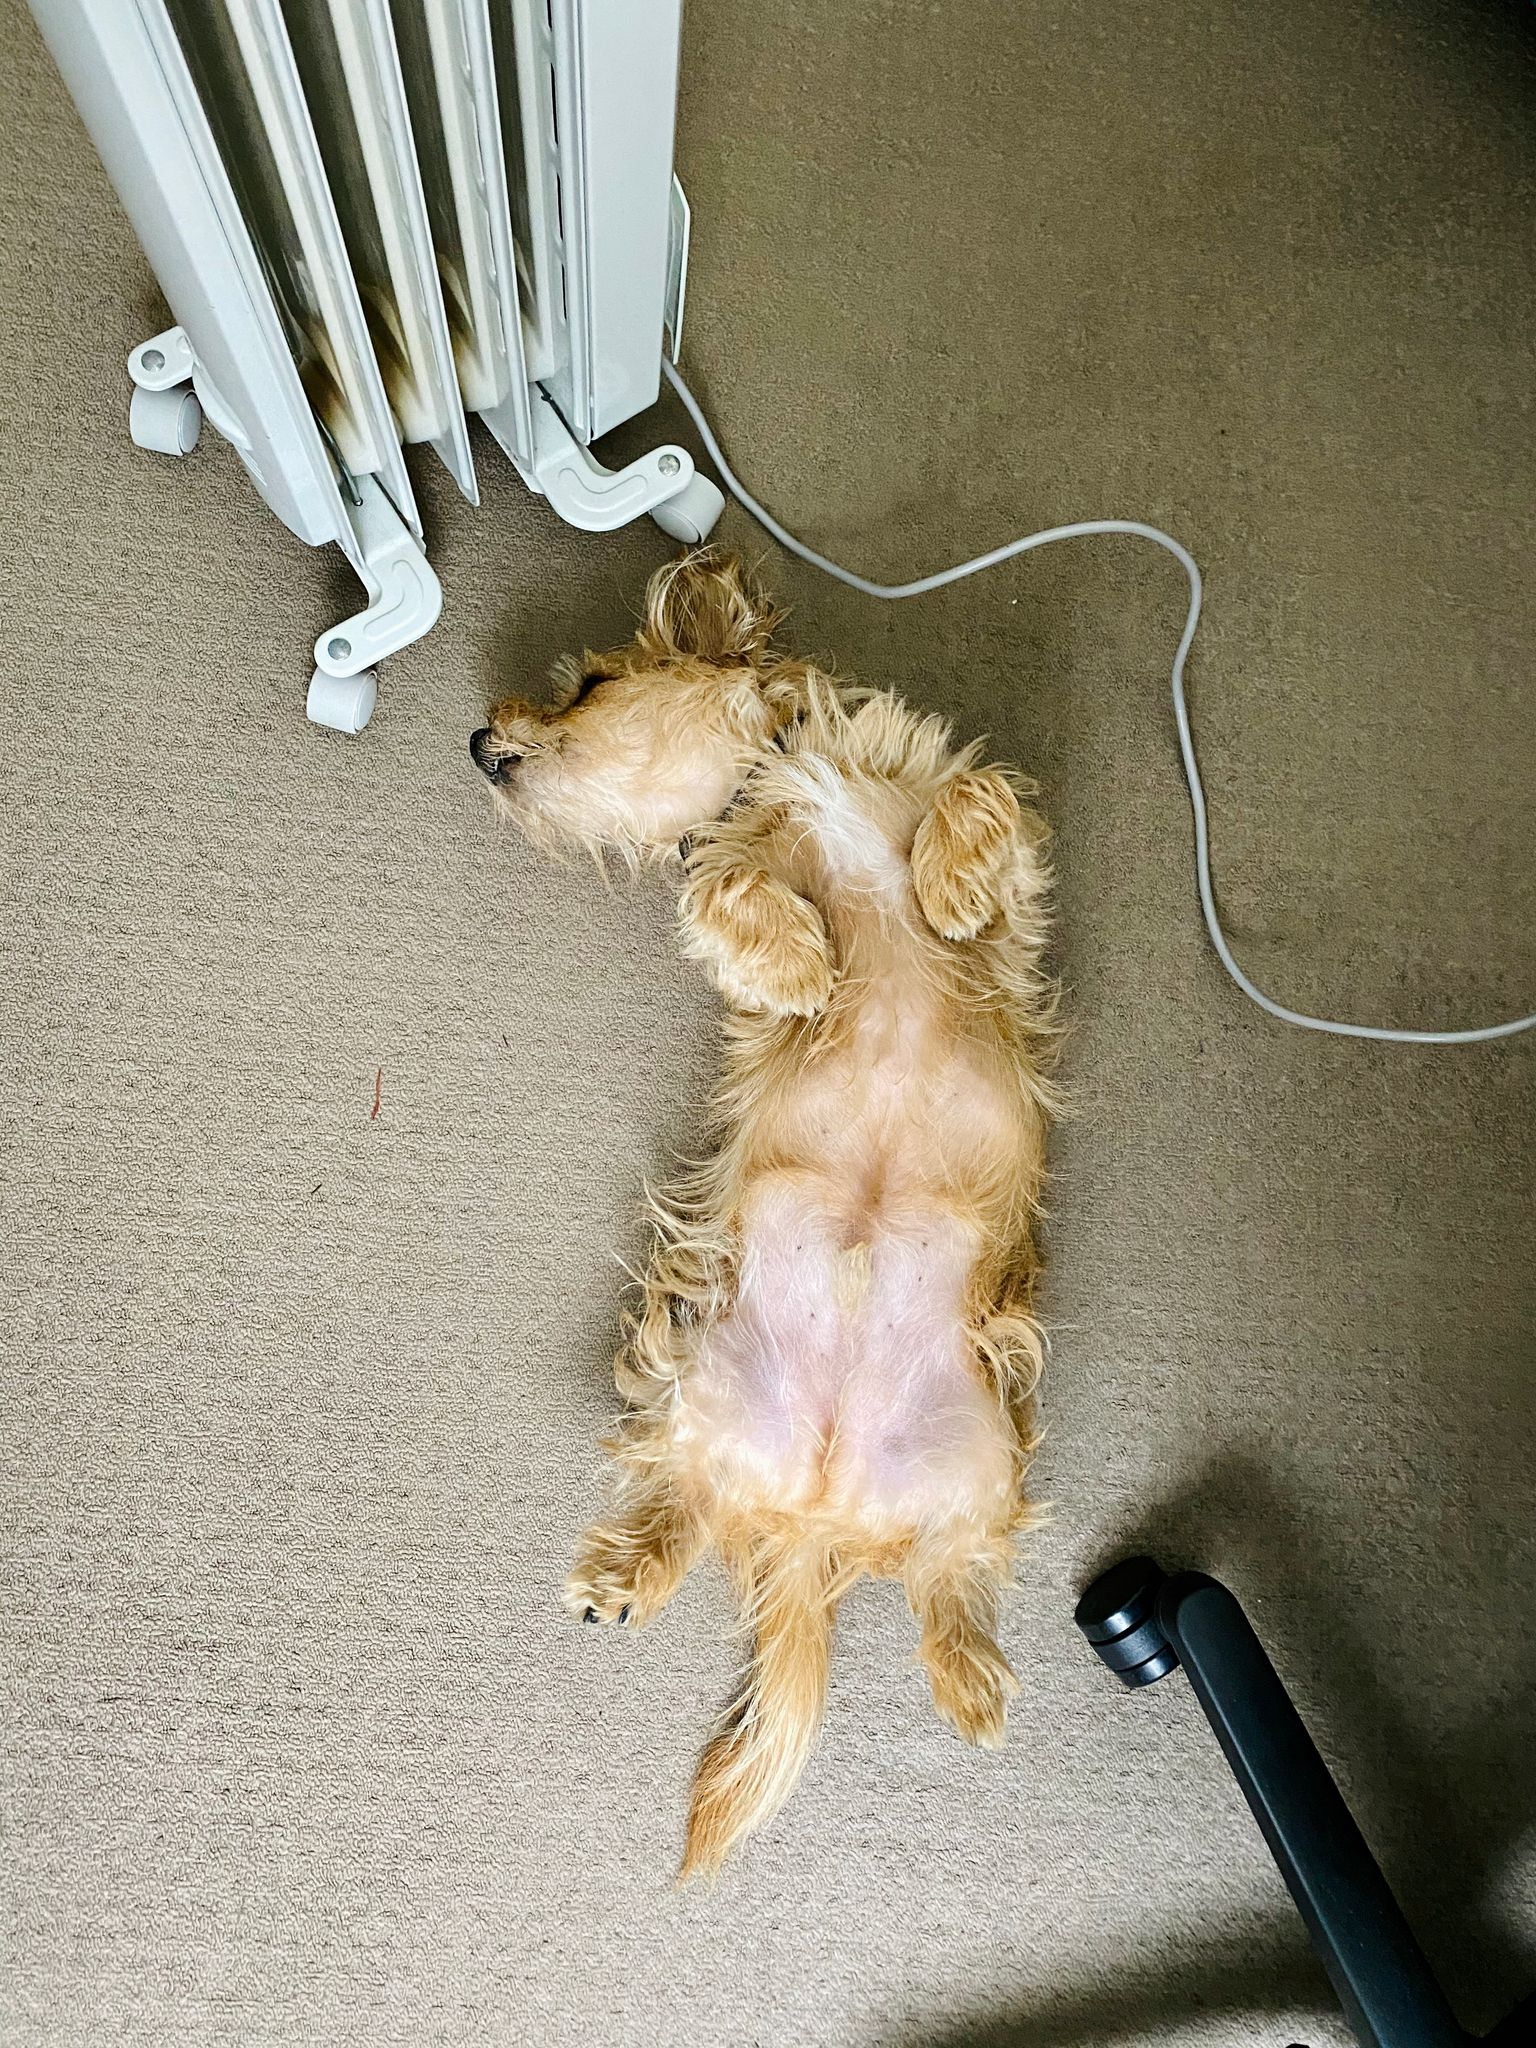 A photo of a small scruffy blonde dog lying upside-down next to an oil heater.